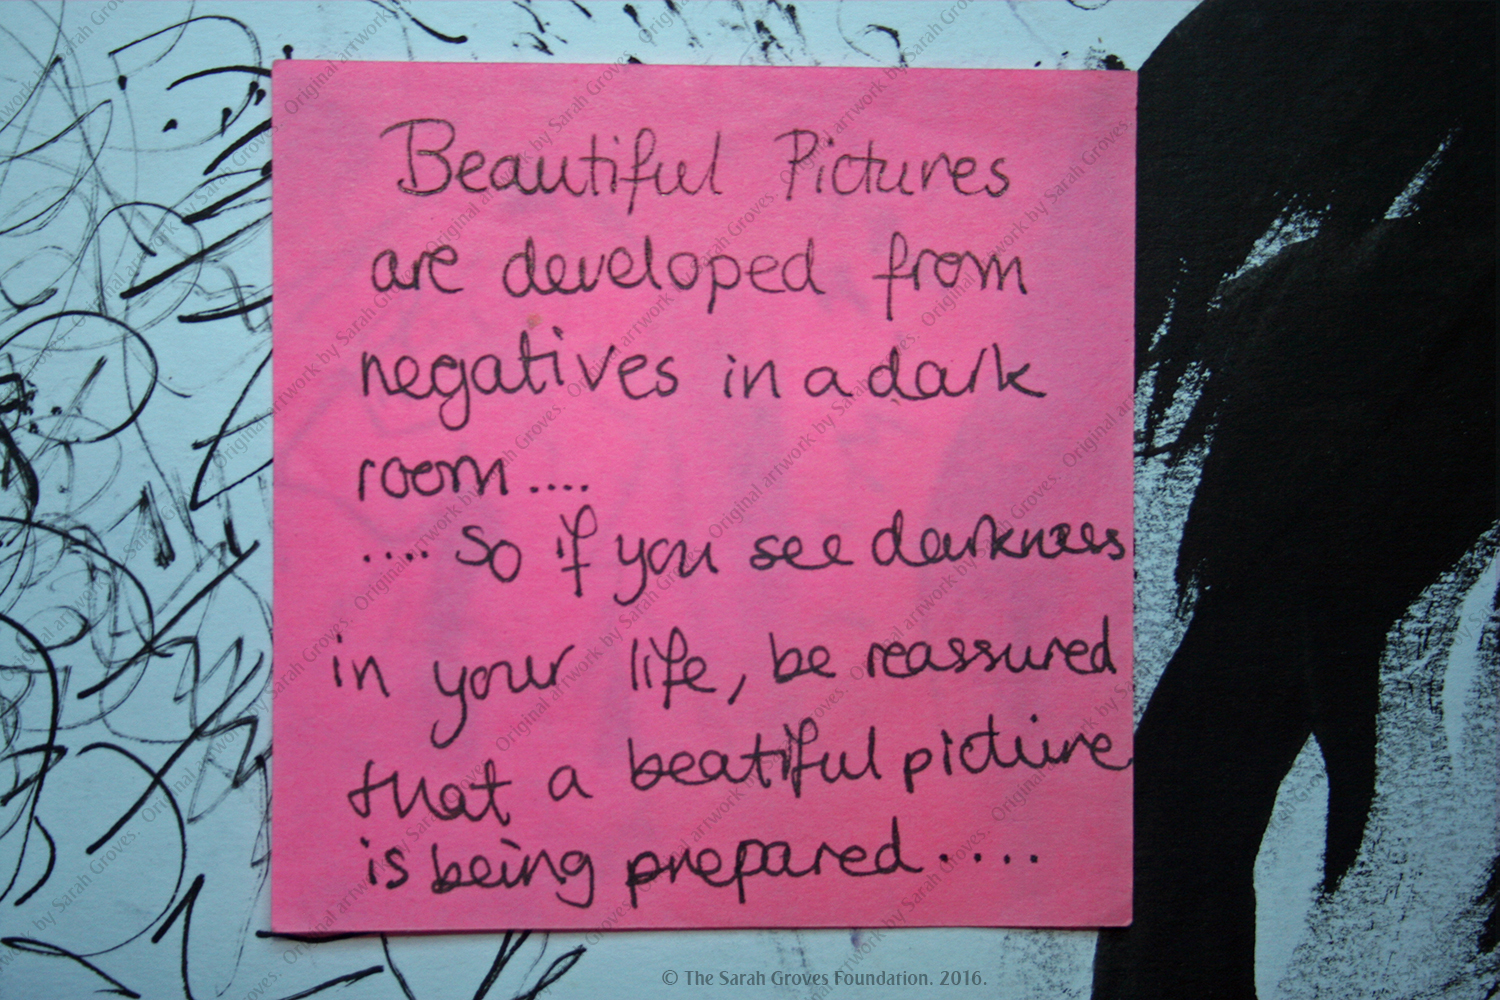 4 Beautiful Pictures Quote - watermark.jpg